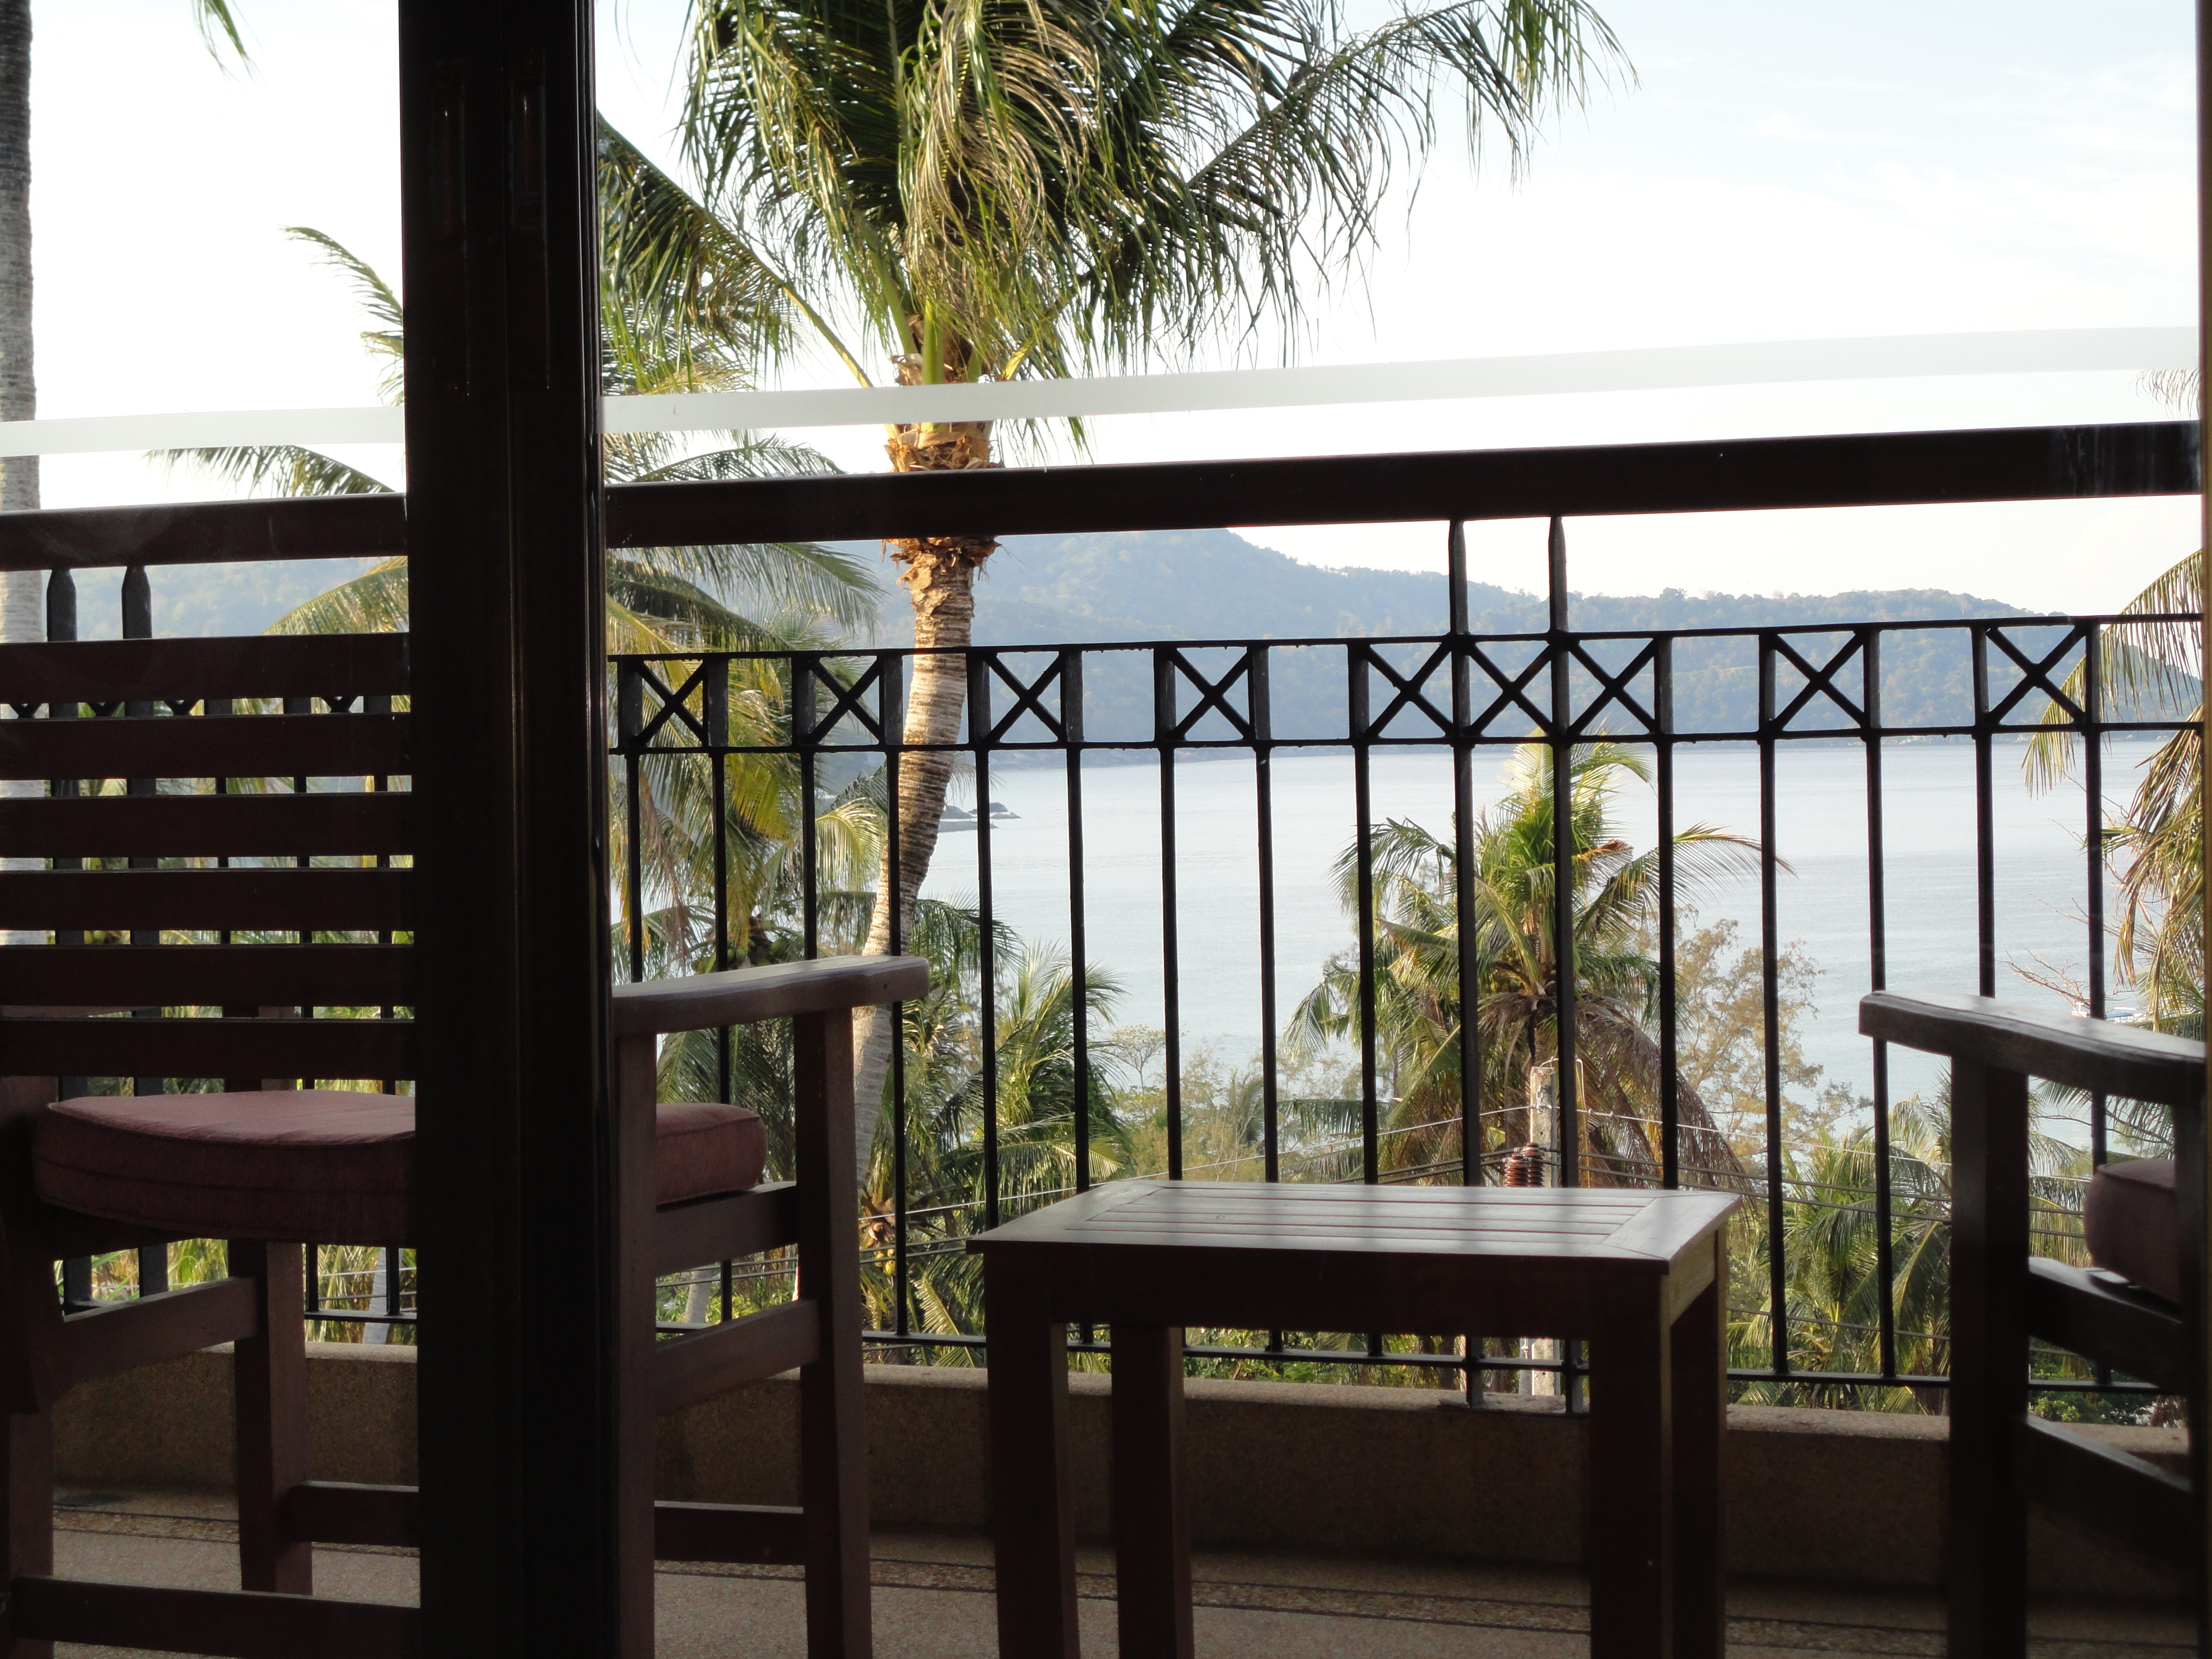 View from Peach Hill Resort